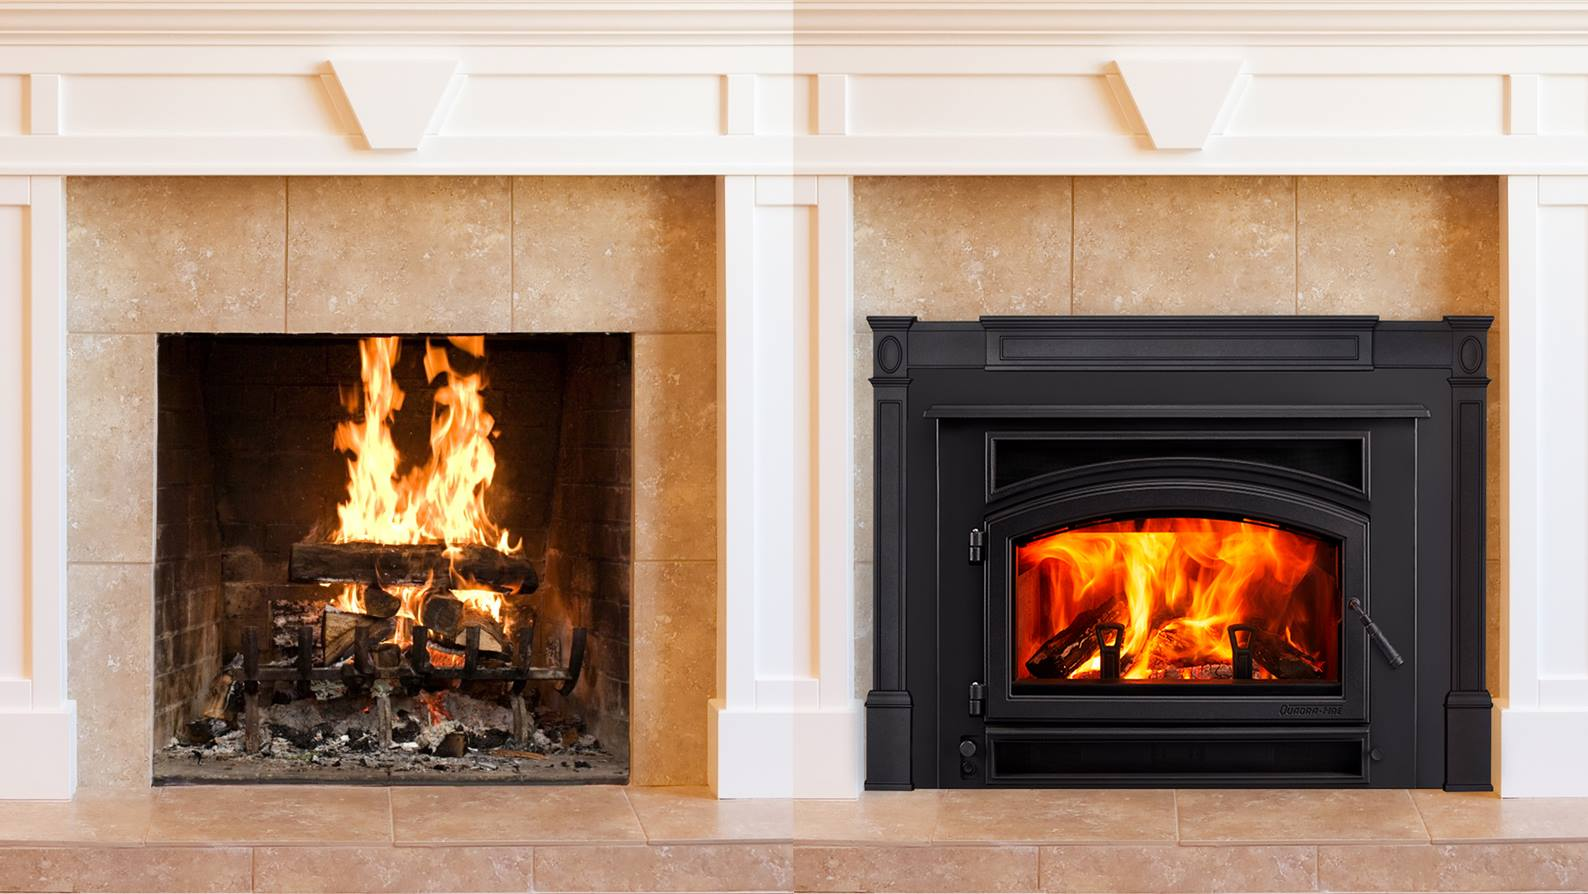 Swell Wood Stove Inserts Quadra Fire Download Free Architecture Designs Grimeyleaguecom